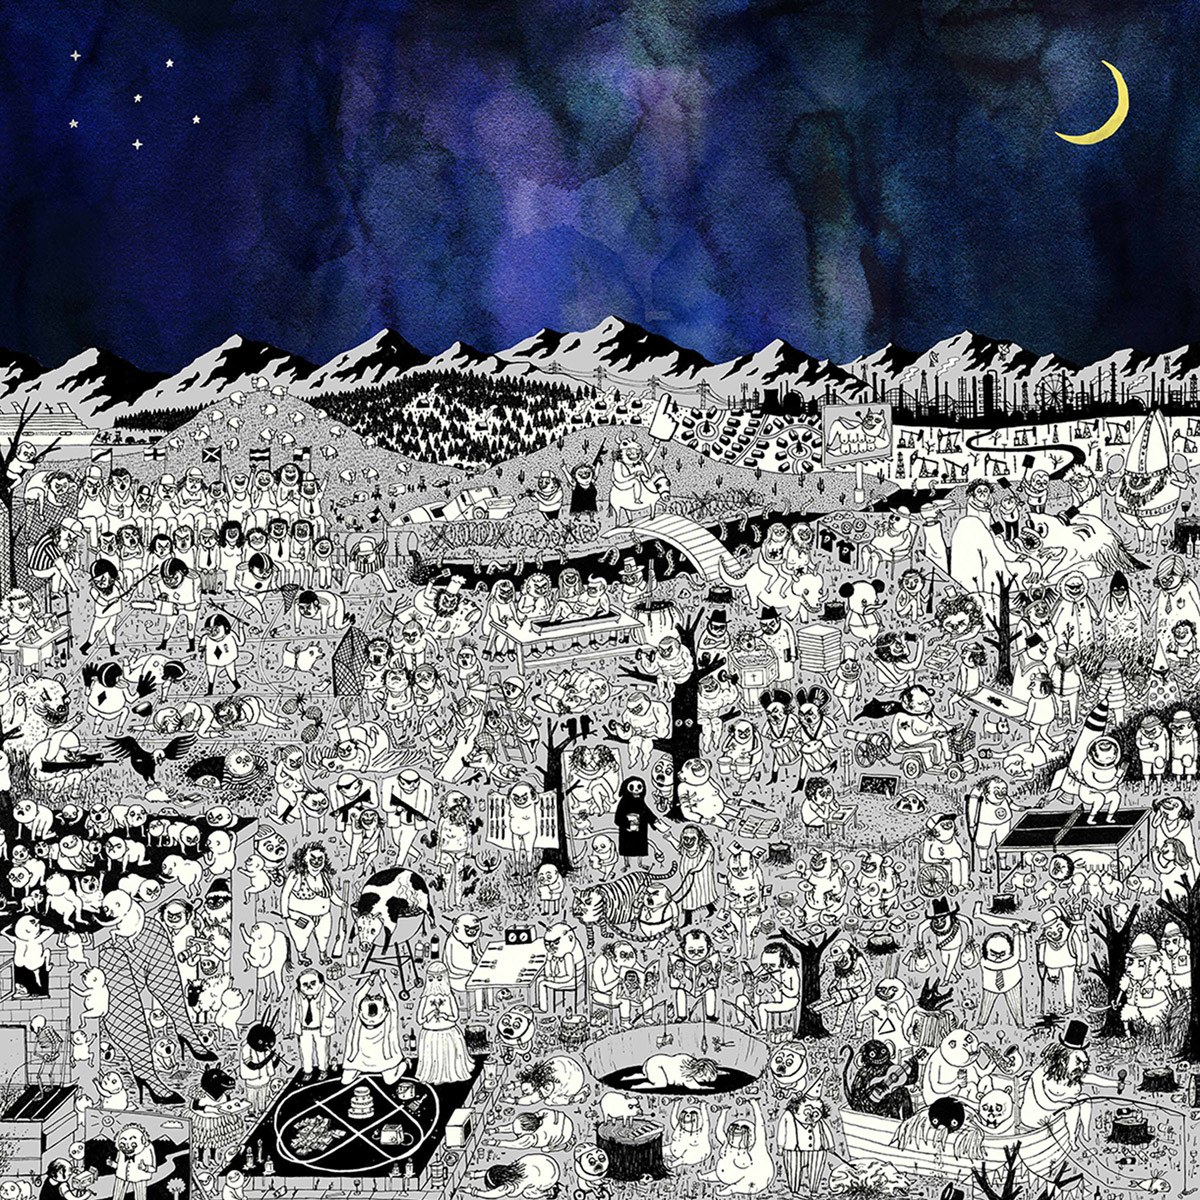 Father John Misty - Pure Comedy